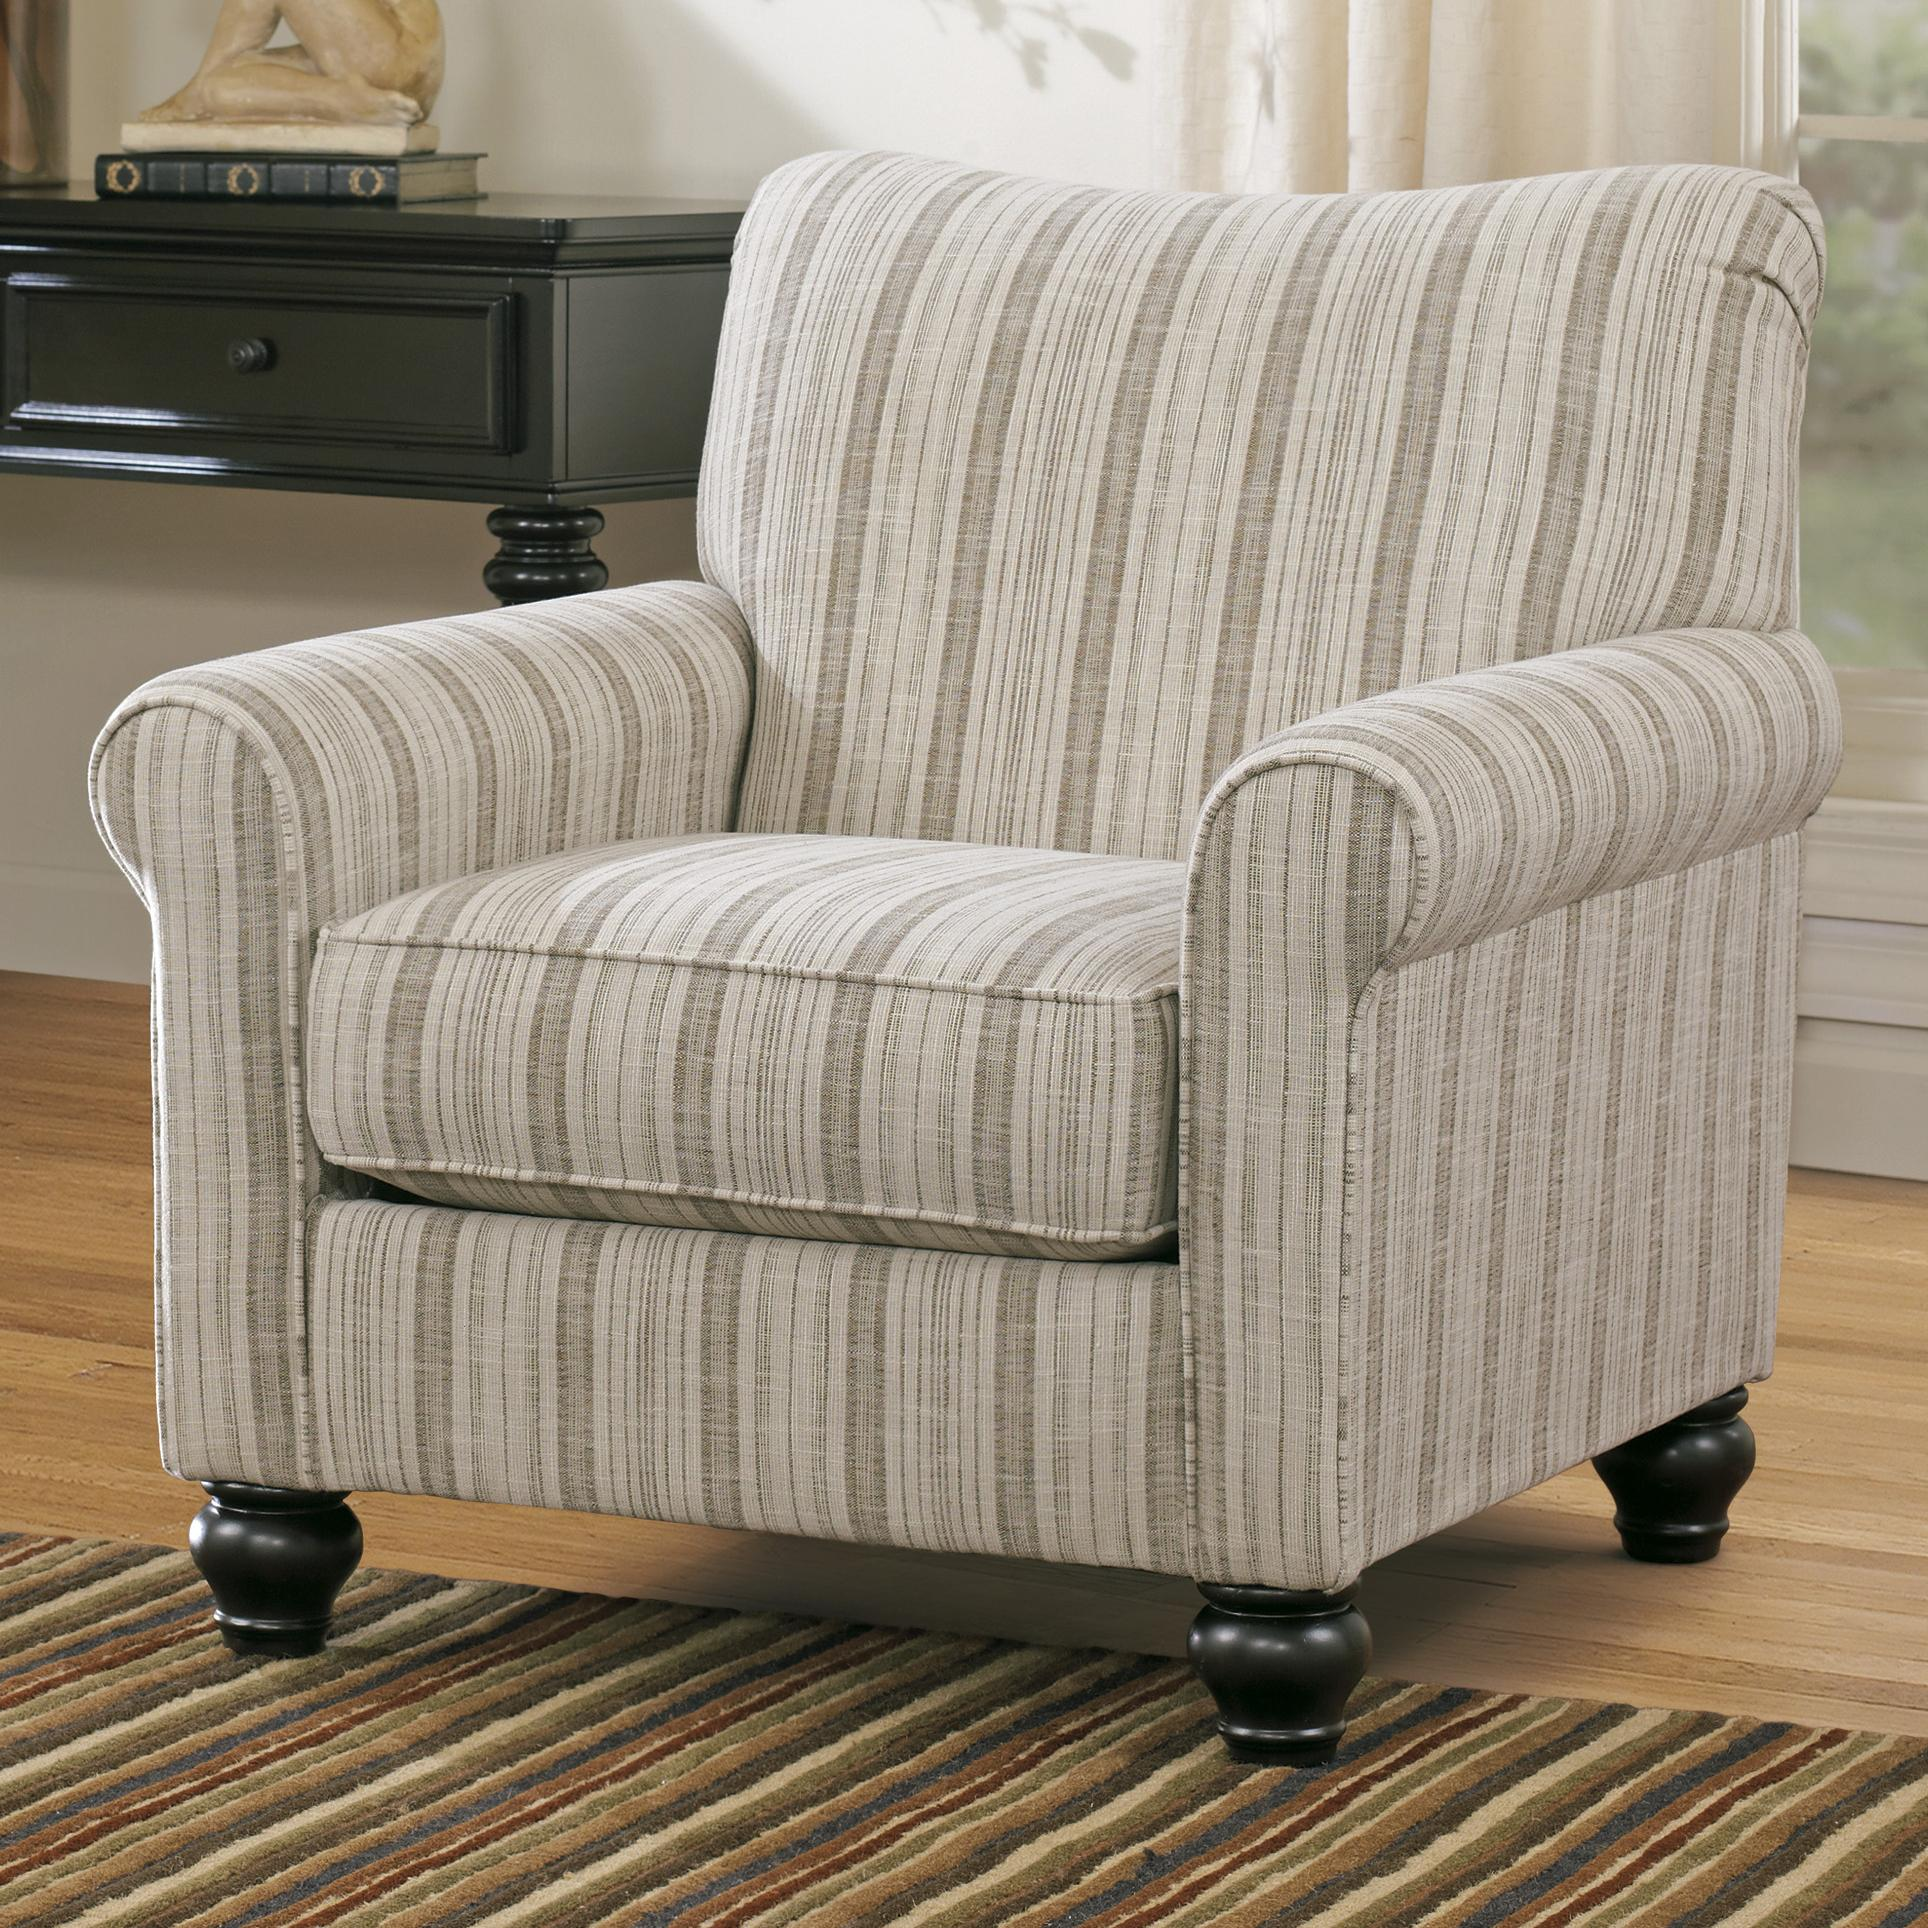 Milari Accent Chair by Signature Design by Ashley at Houston's Yuma Furniture